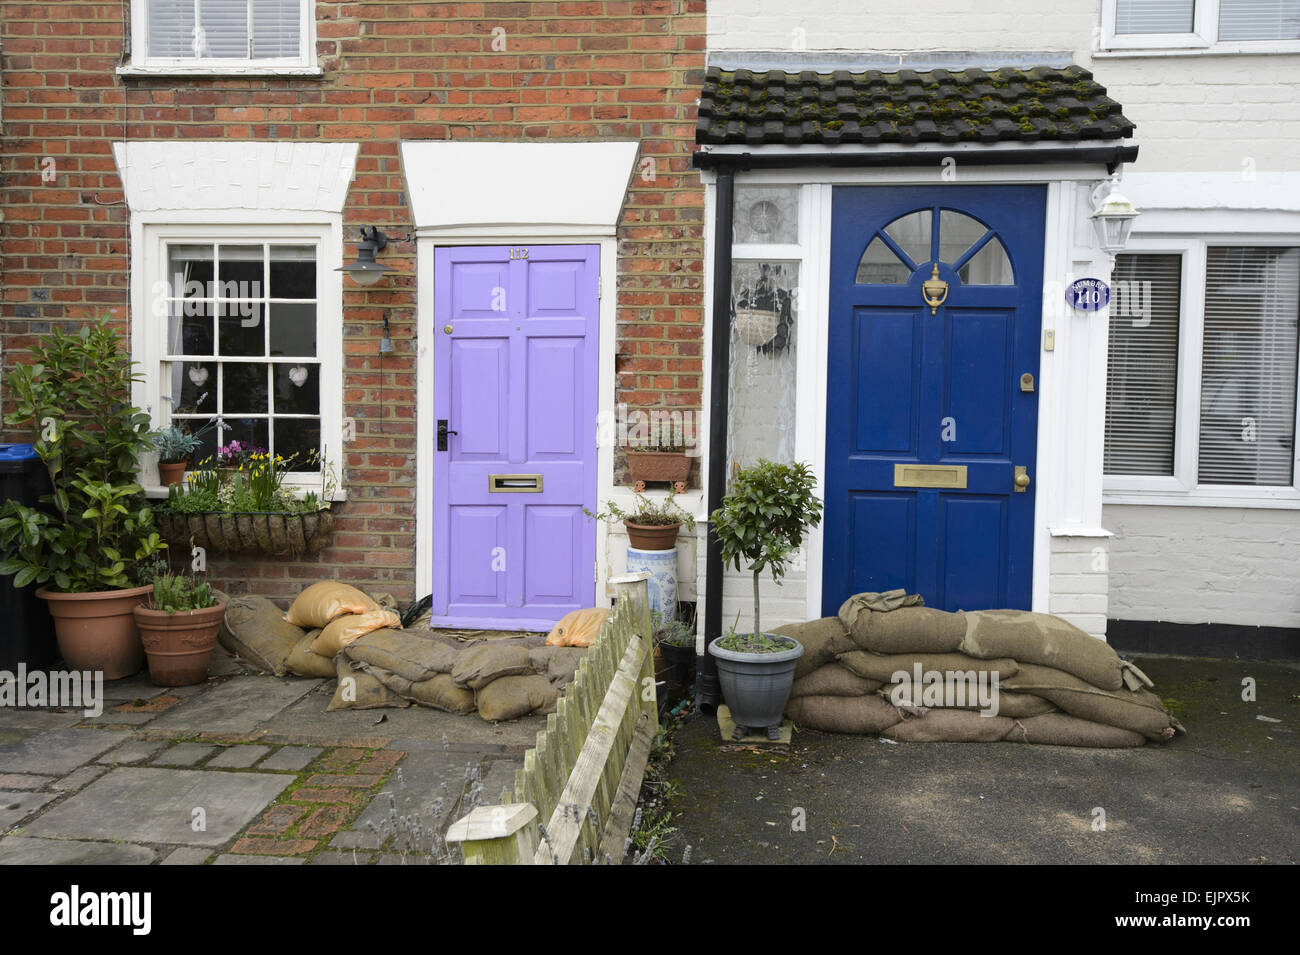 Sandbags piled against house doors during river flood, River Thames, Chertsey, Surrey, England, February 2014 - Stock Image